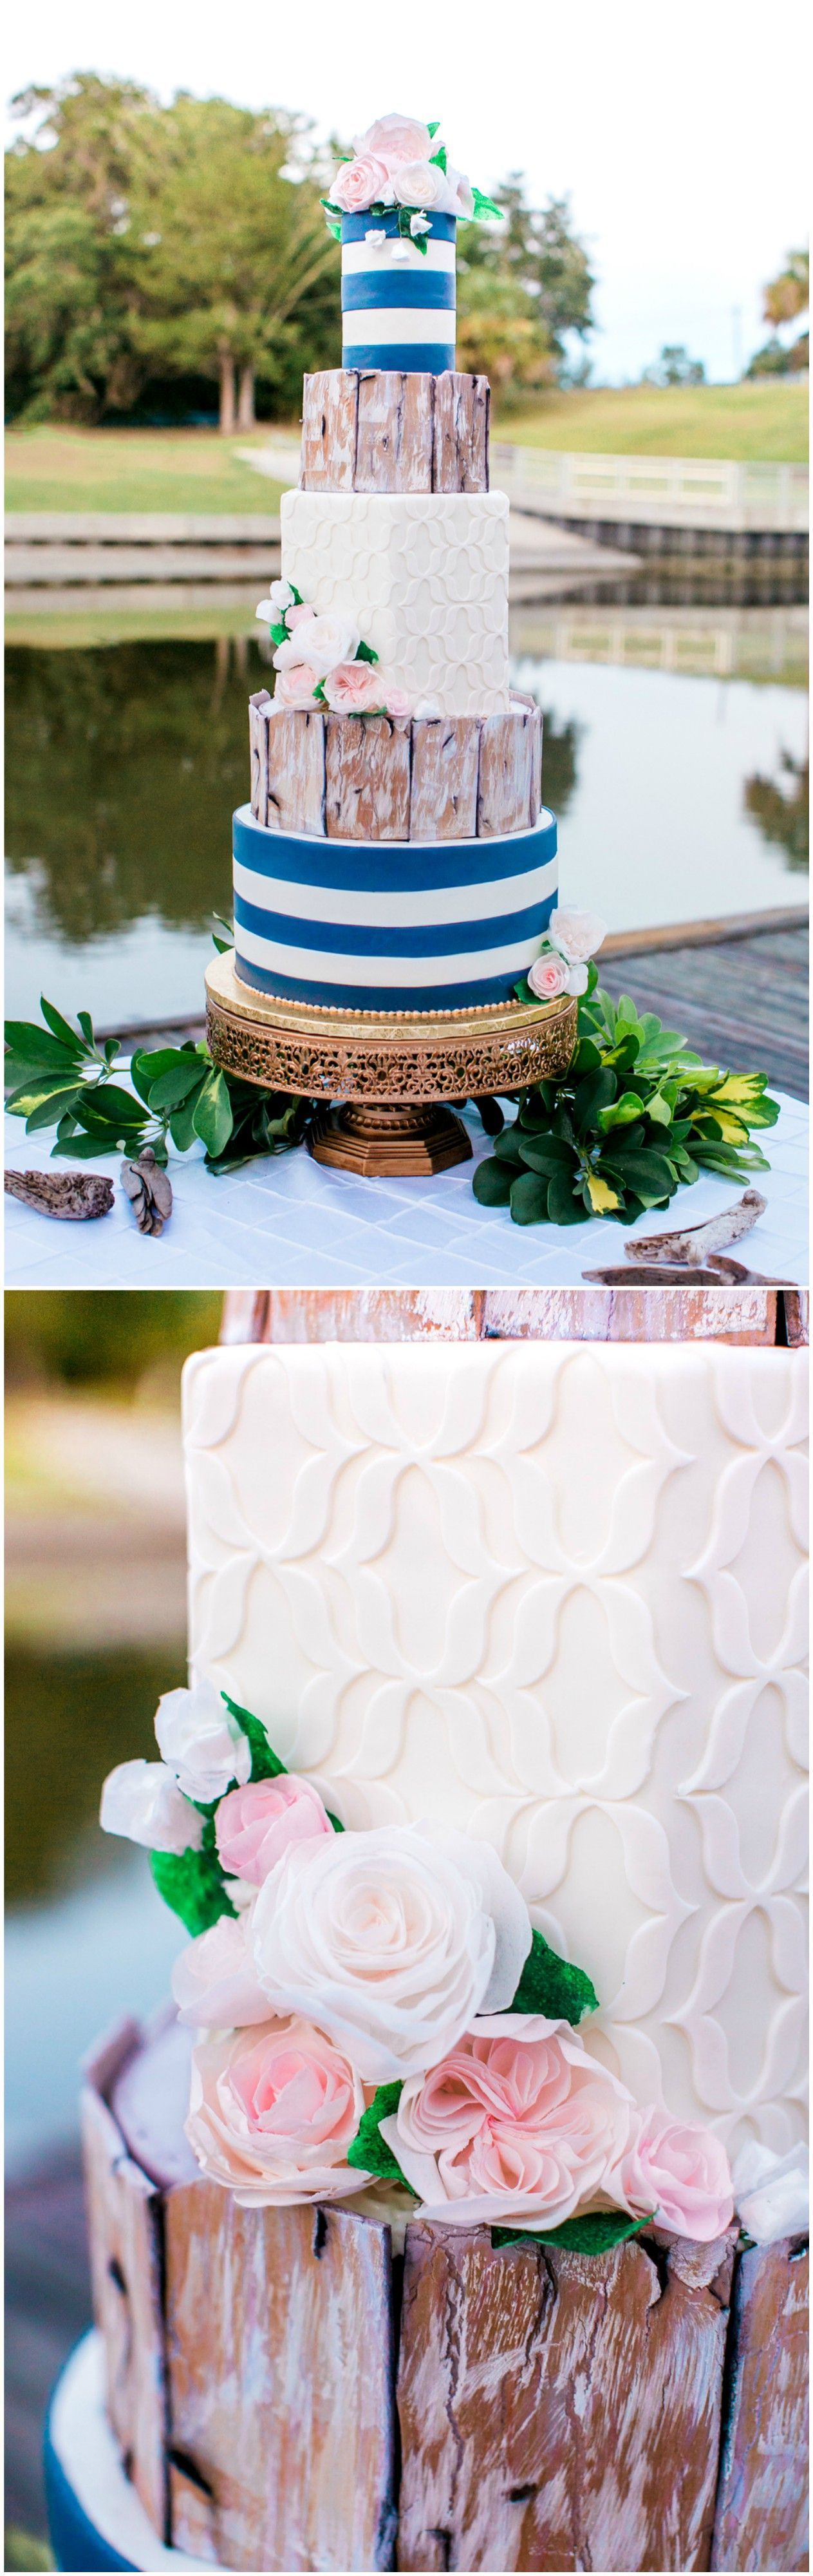 Tall wedding cake, unique cake design, blue and white stripes, pink ...